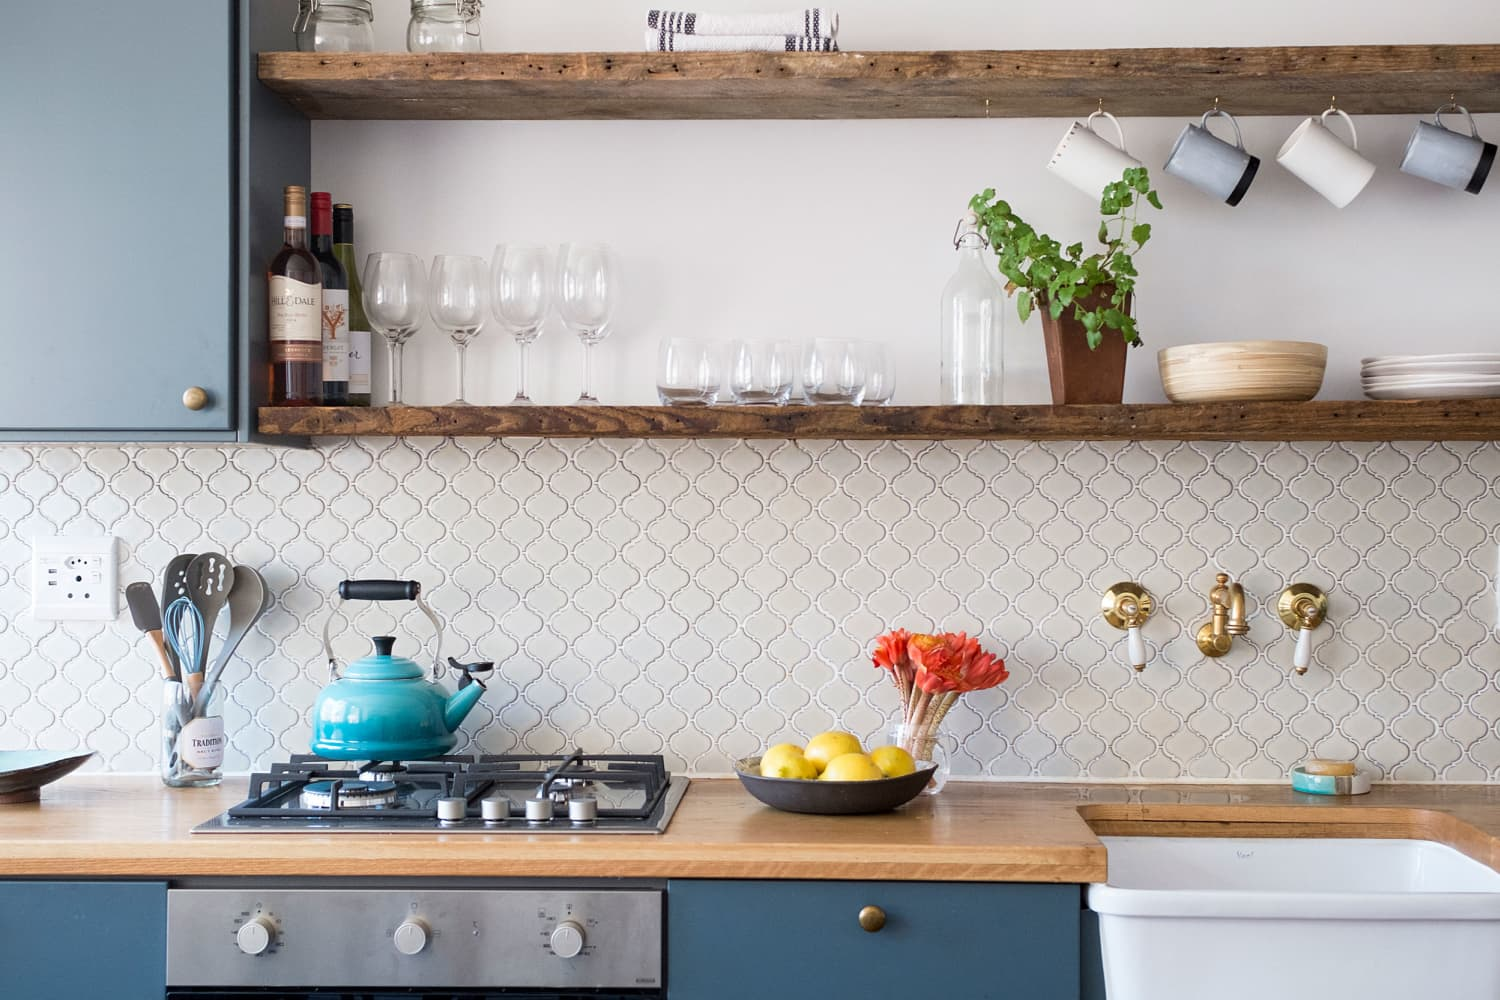 One Small Step You Can Take This Weekend Towards a Less-Cluttered Kitchen